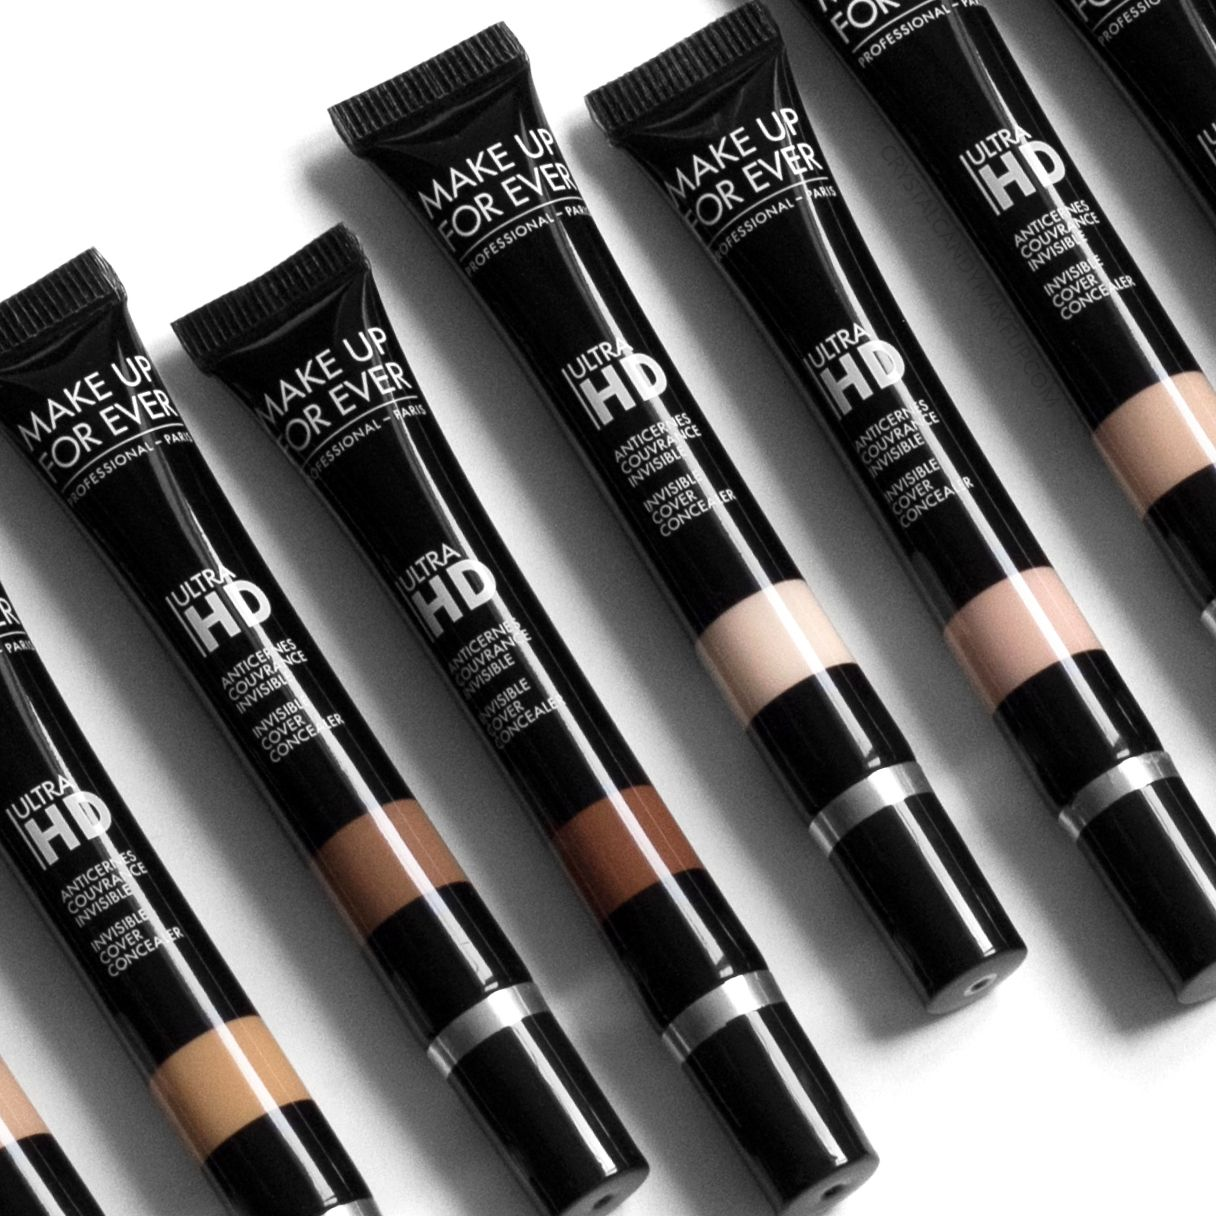 Make Up For Ever Ultra HD Concealers, swatches of all the